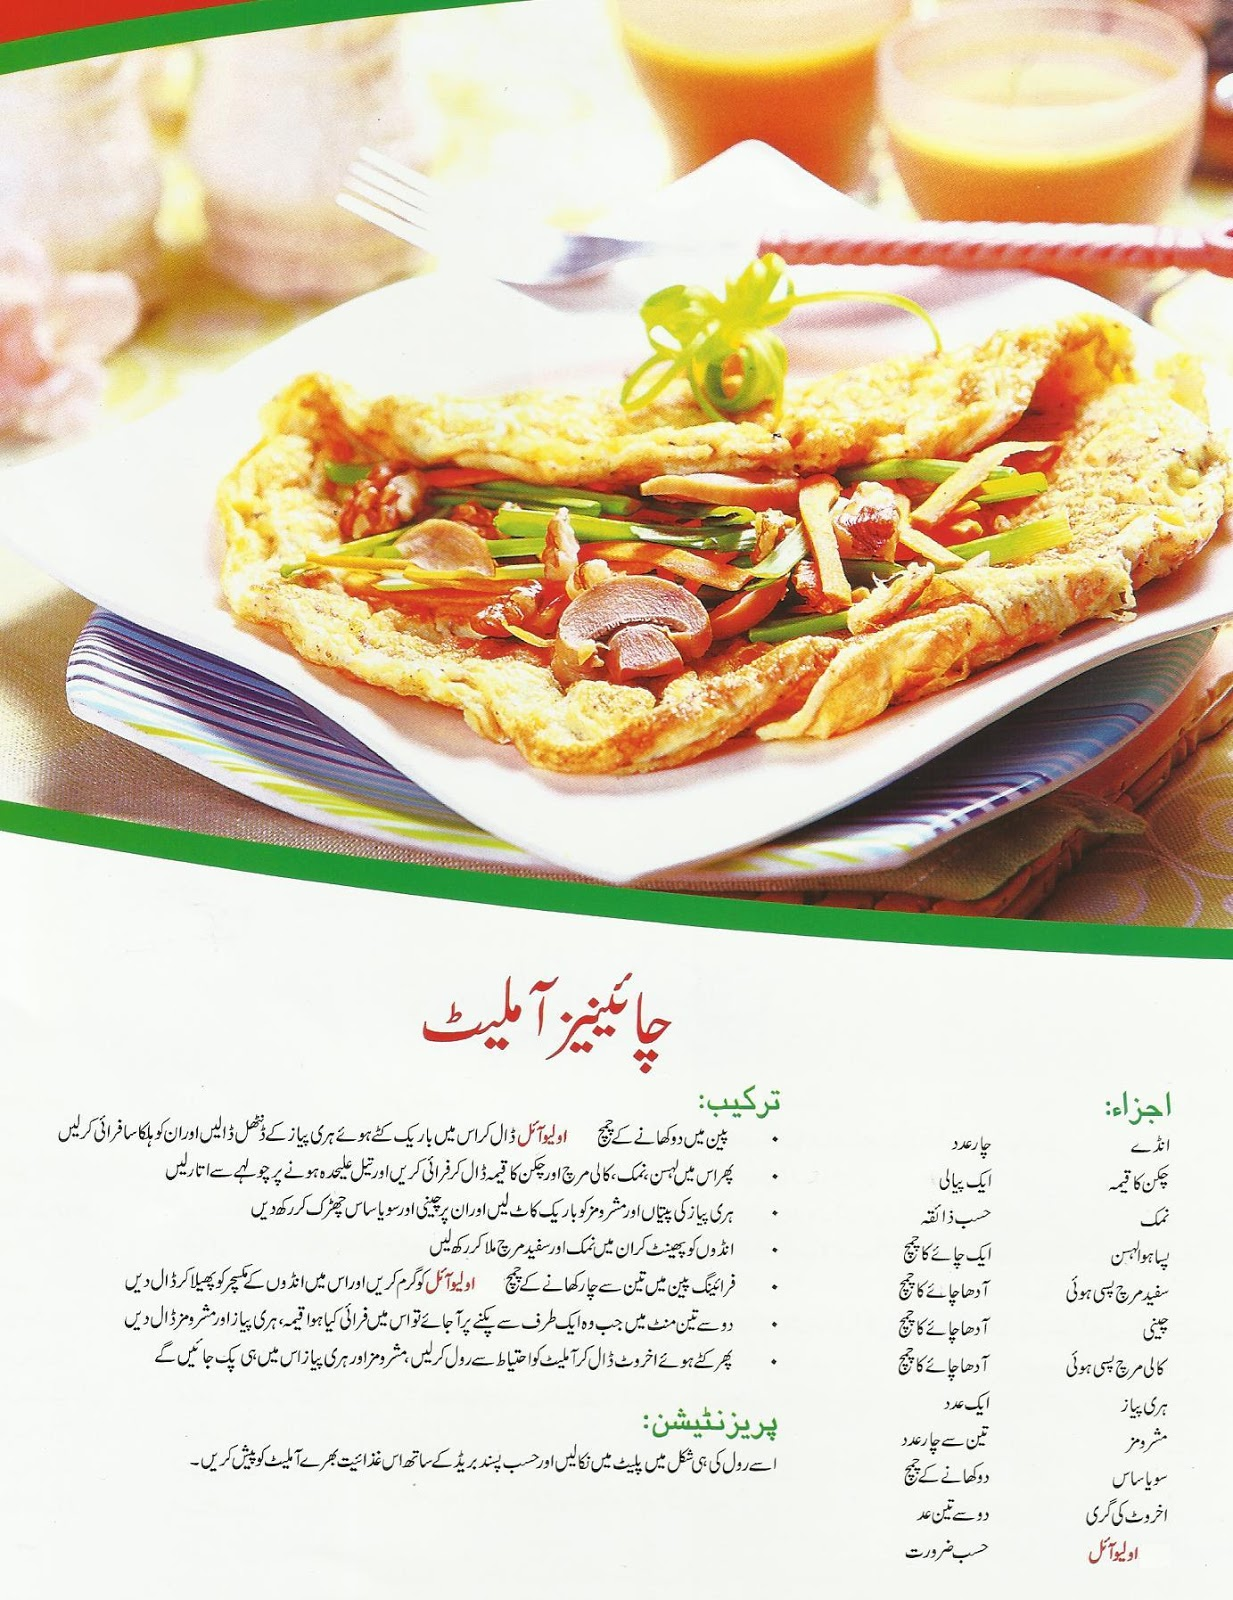 World recipe book chinese omelette recipe in urdu pakistani food chinese omelette recipe in urdu pakistani food forumfinder Images